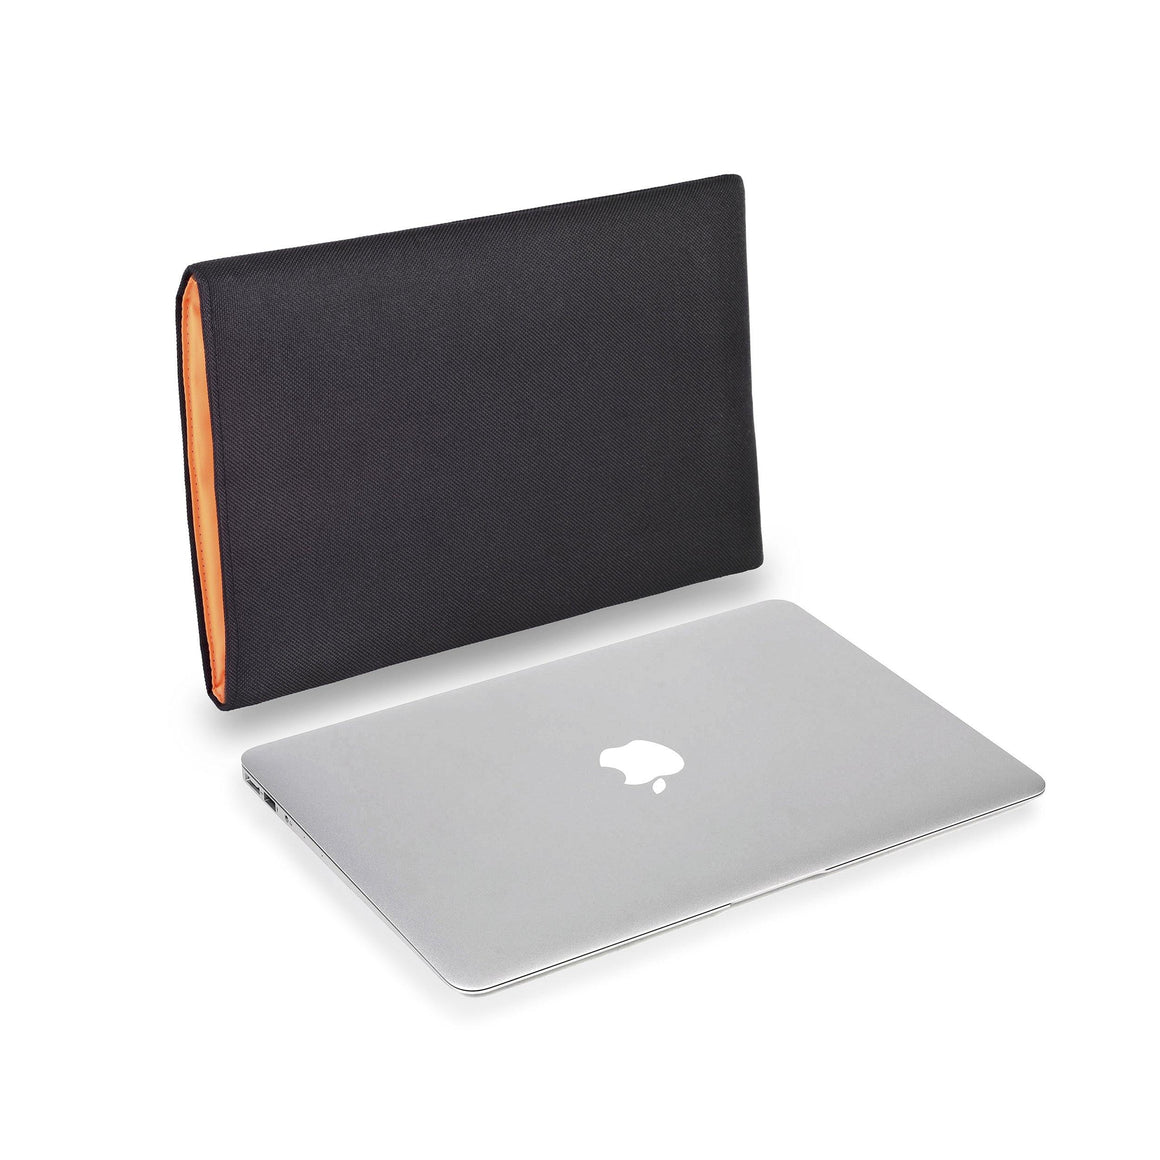 MacBook Cordura Black